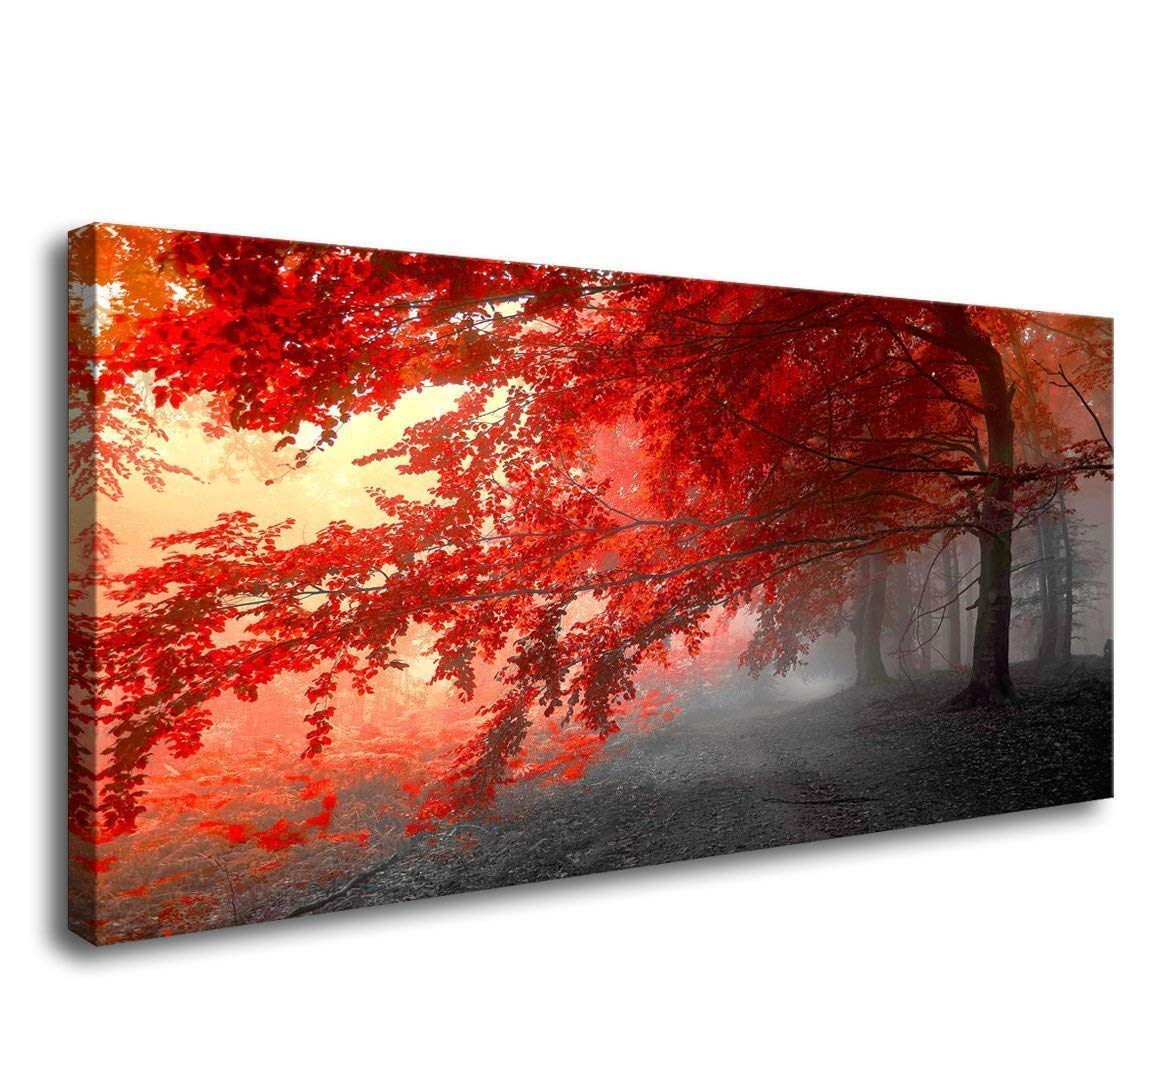 Canvas wall art for living room black and white red tree landscape painting bedroom wall decor 20 x 40 artwork ready to hang for decorations